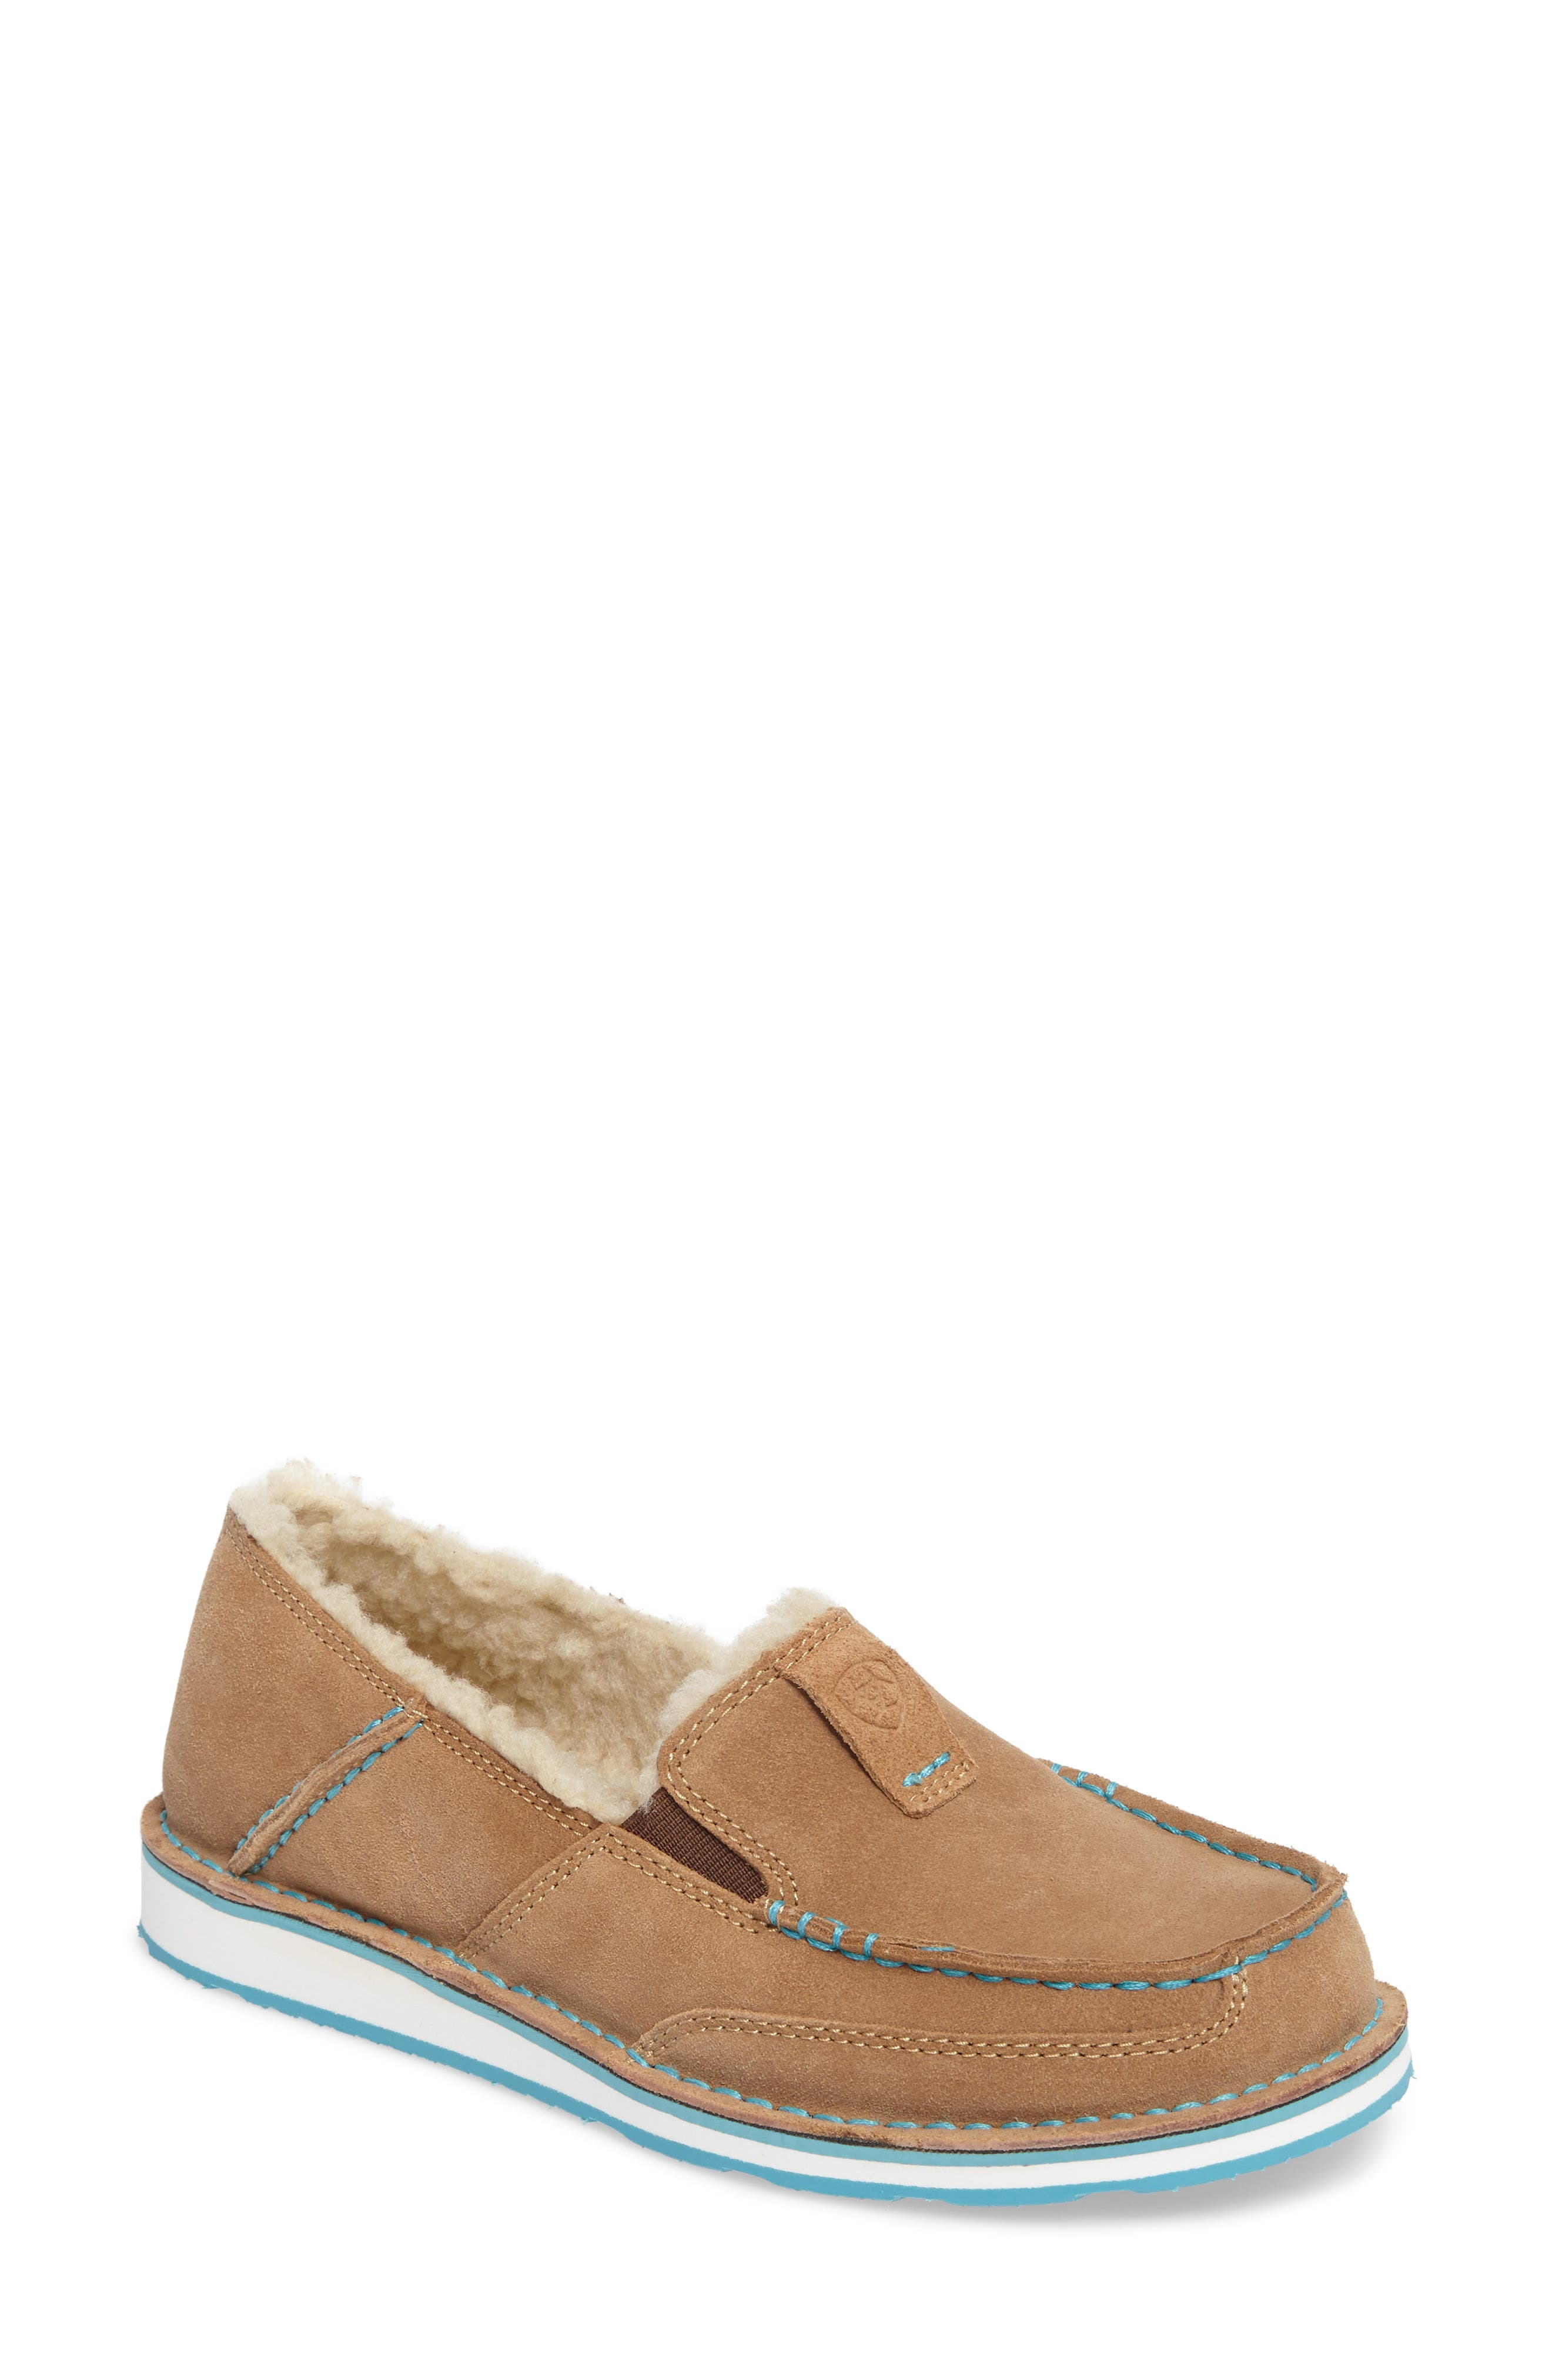 Cruiser Slip-On Loafer With Faux Shearling Lining, Fleece Dirty Taupe Suede